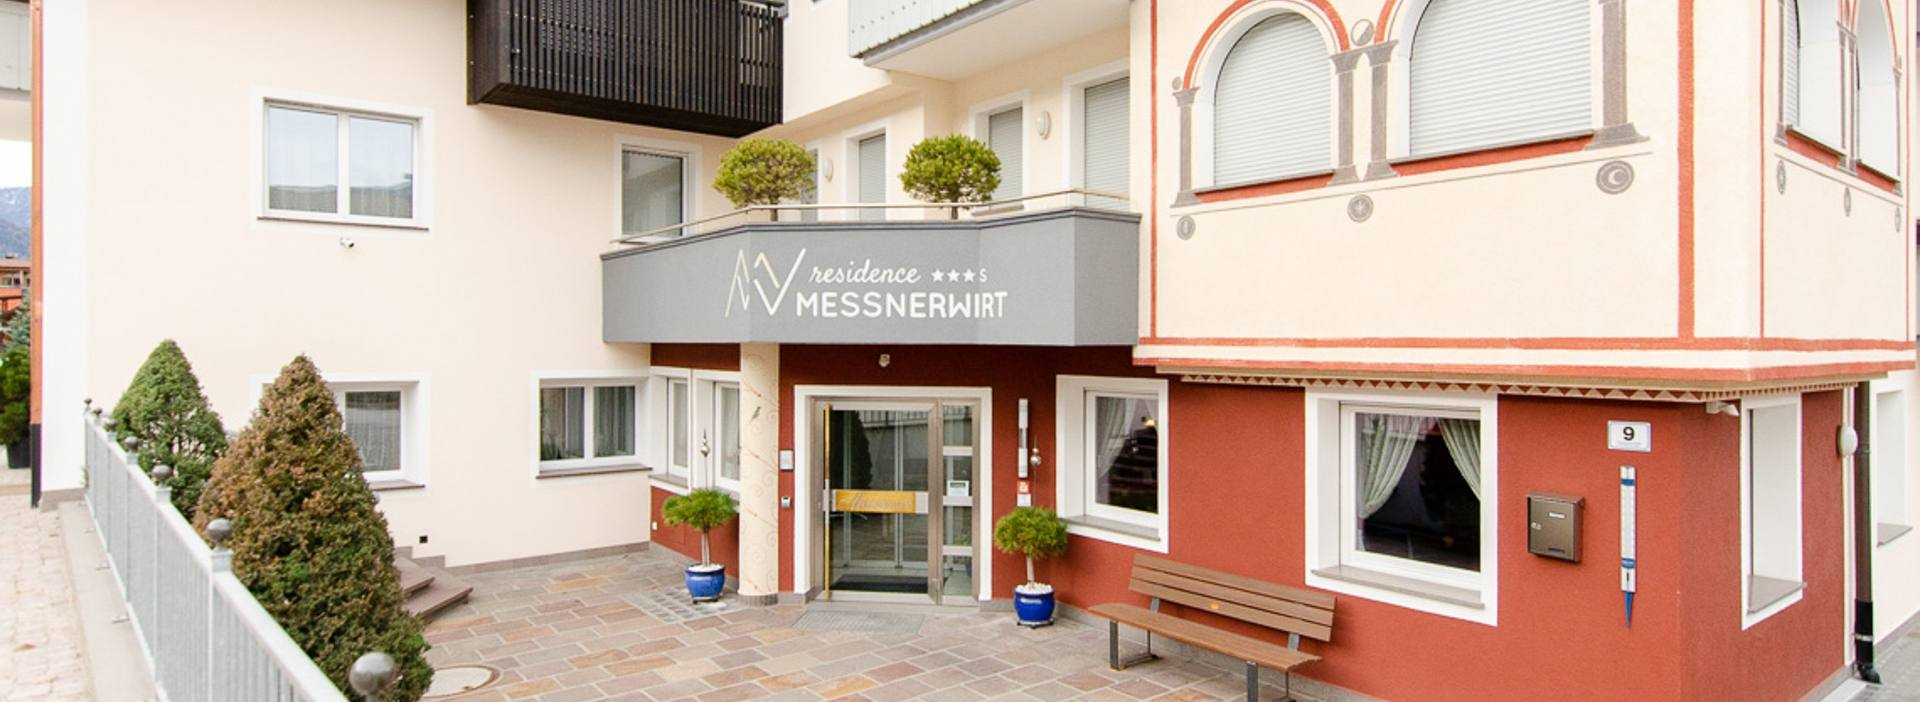 Residence Messnerwirt